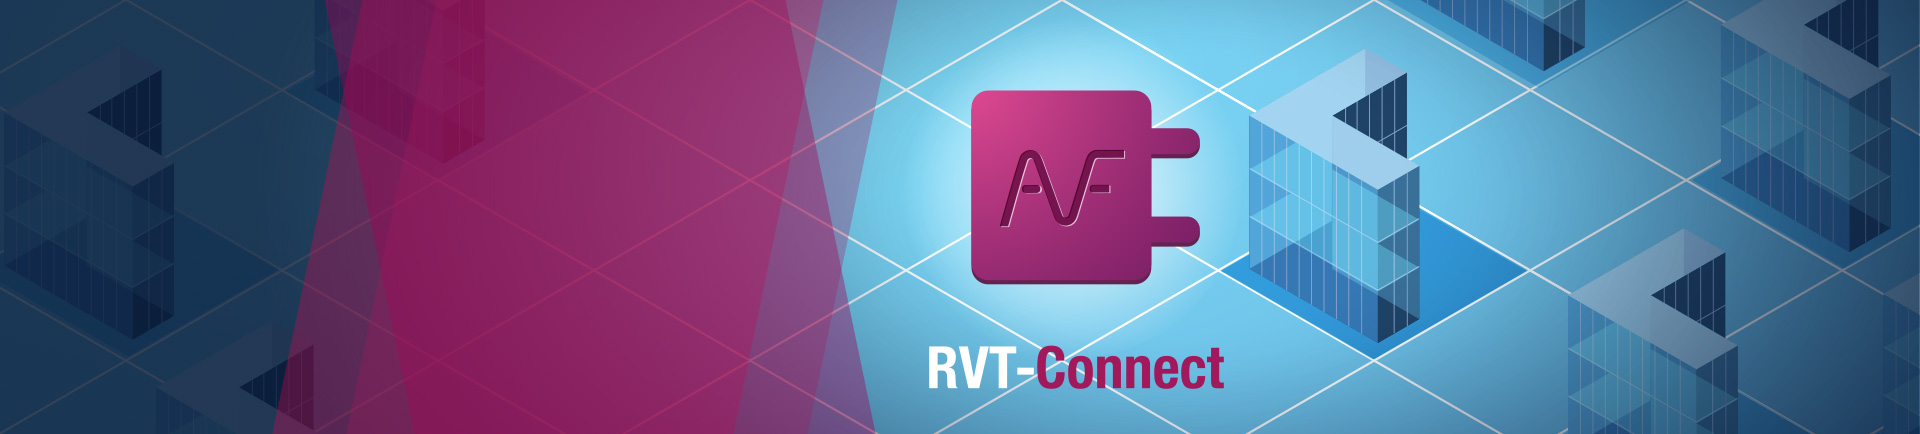 traceocad-rvt-connect-slider